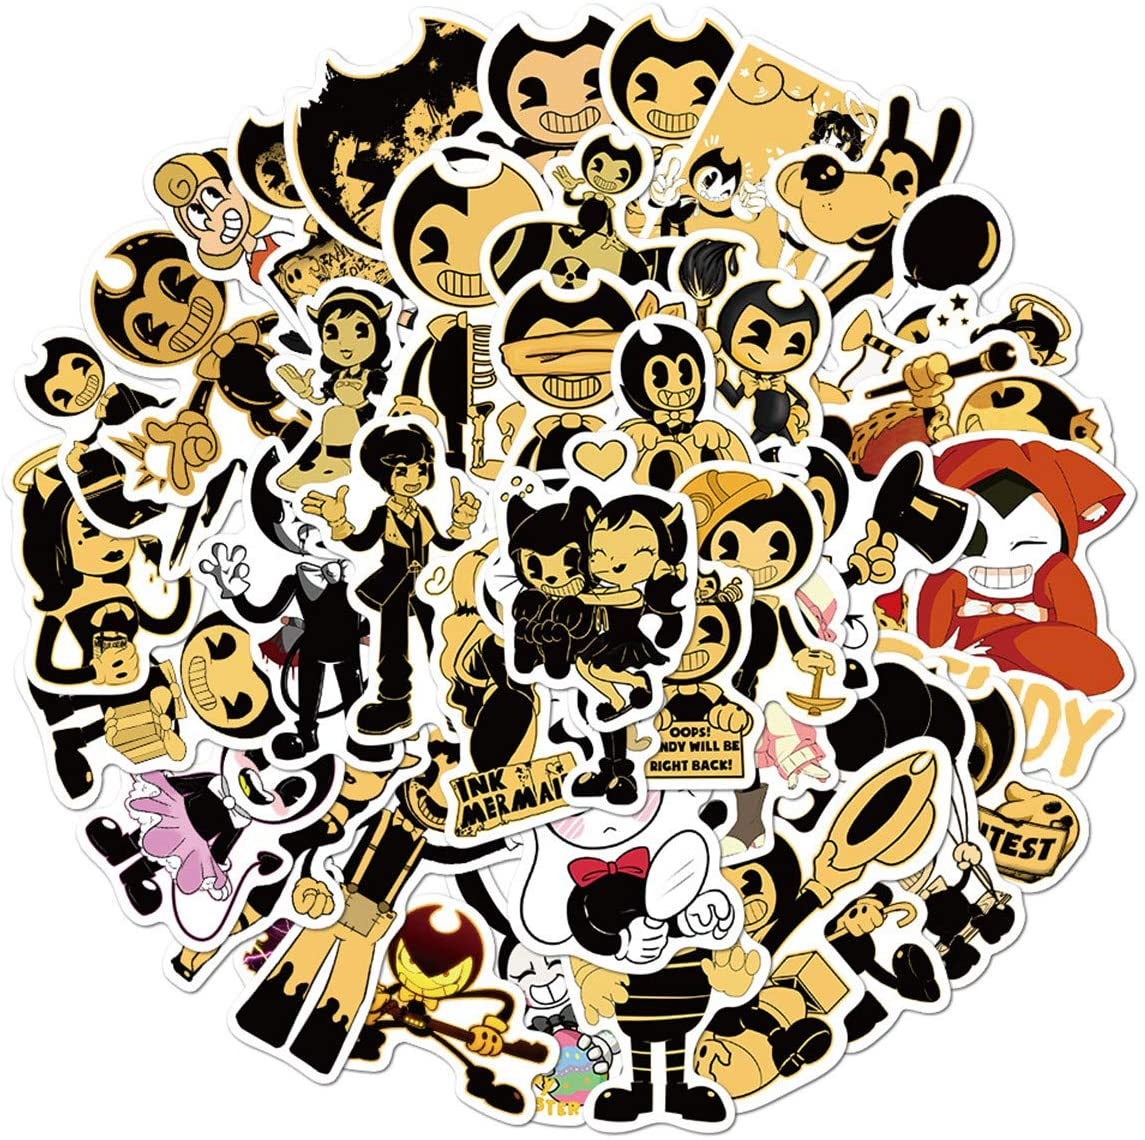 Bendy and The Ink Machine Stickers for Laptop and Computer?50 PCS? Anime Cartoon Waterproof Vinyl Stickers for Water Bottle Hydro Flask Car Bumper Luggage (Bendy and The Ink Machine)